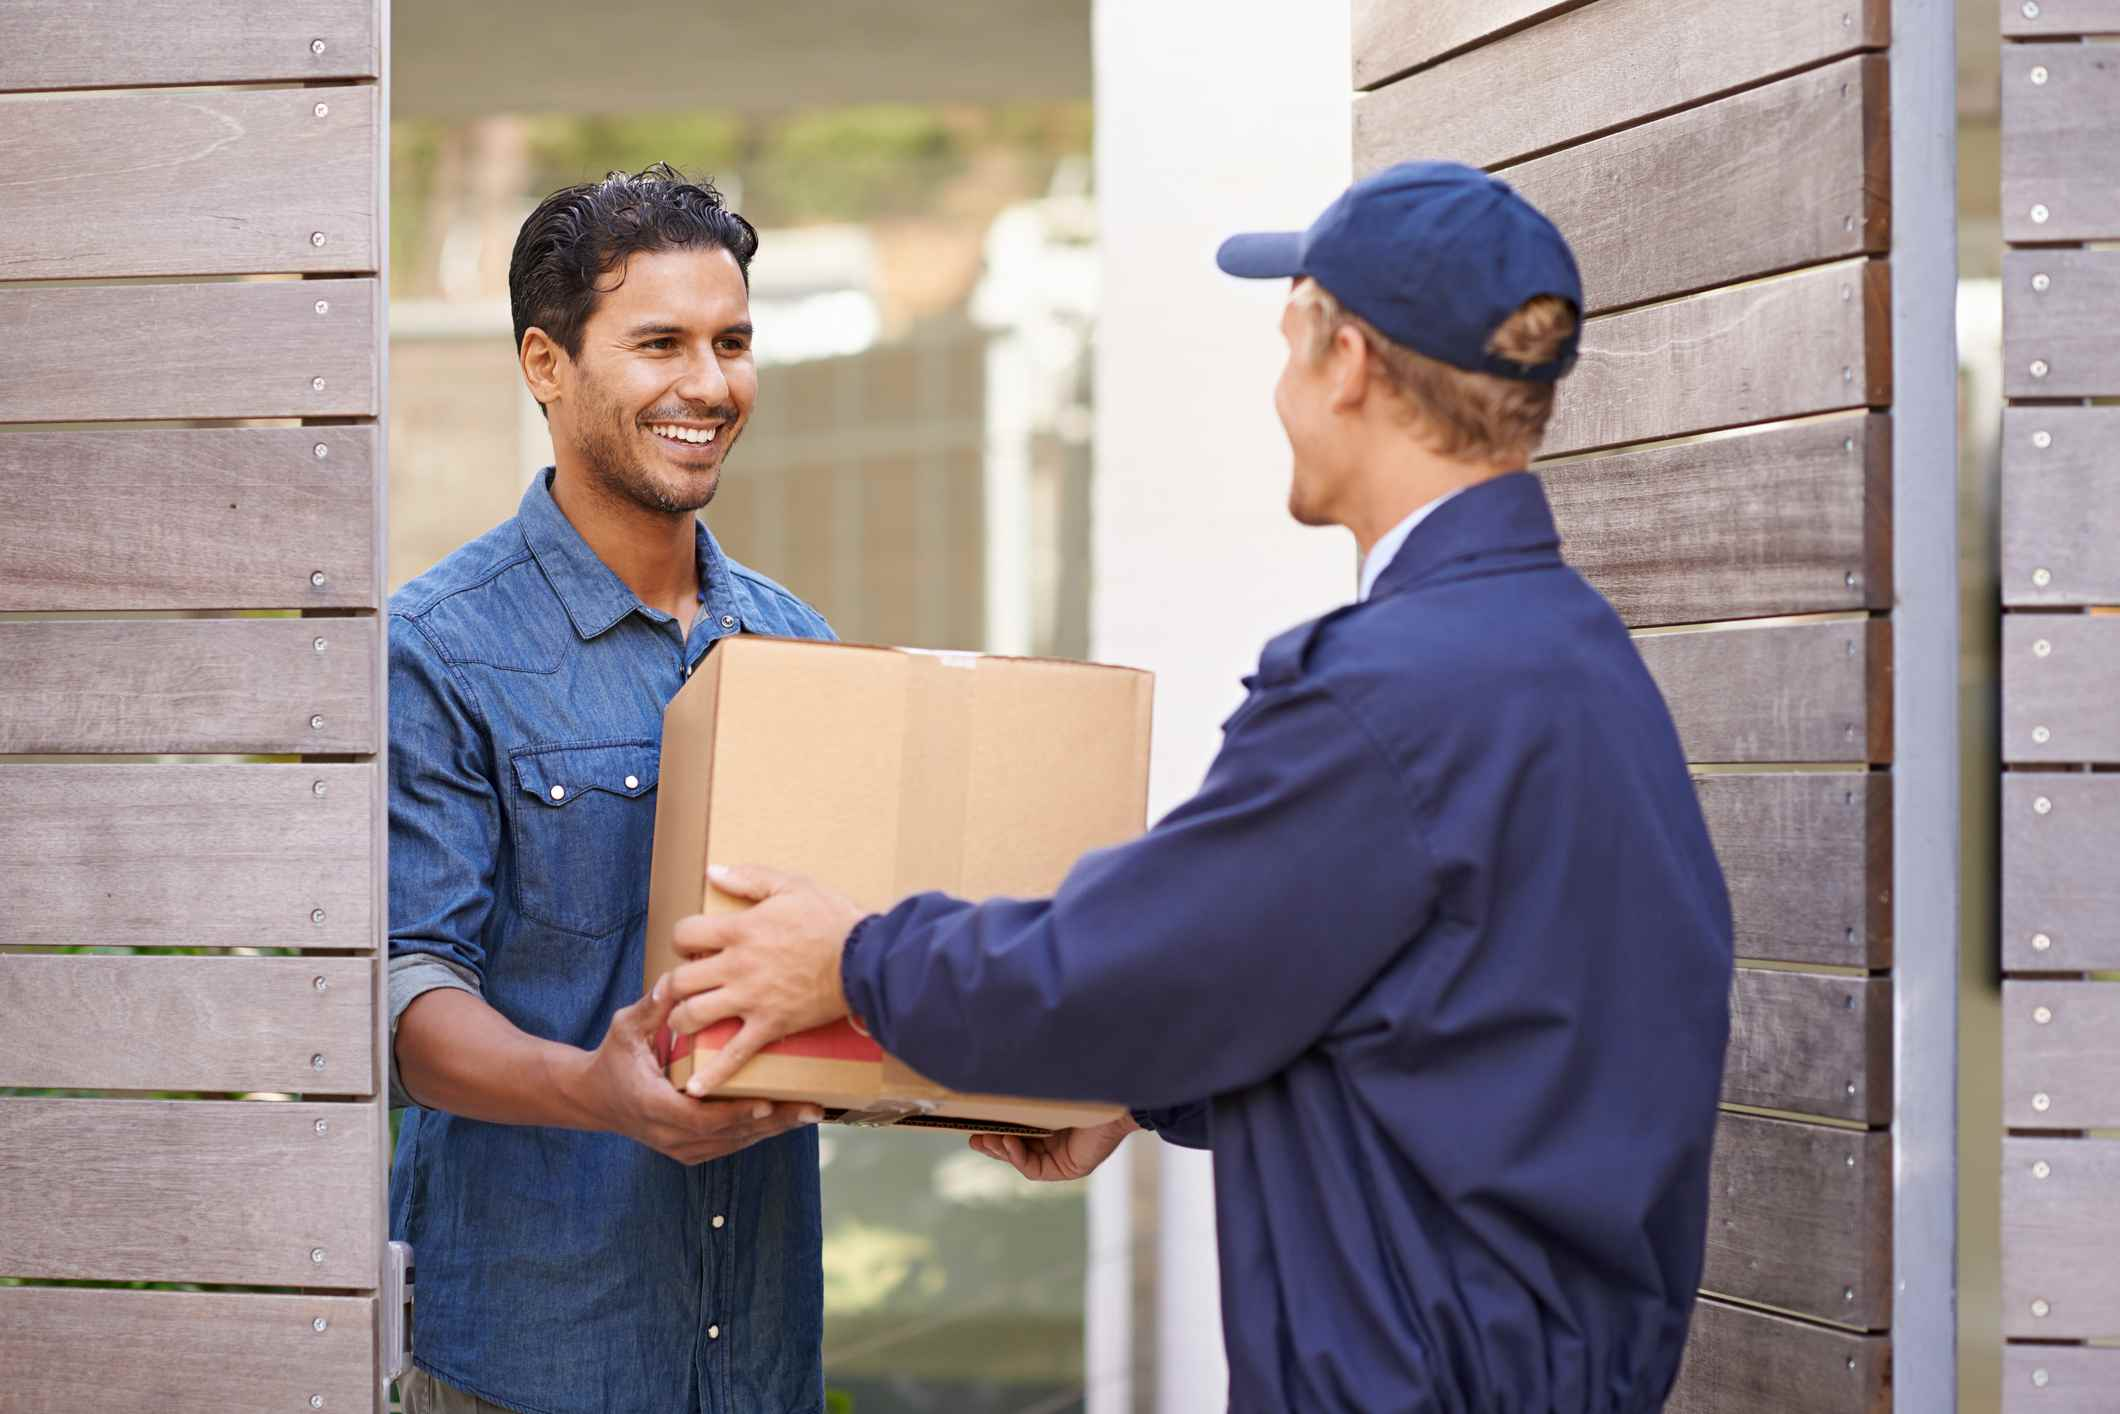 Delivering box to homeowner